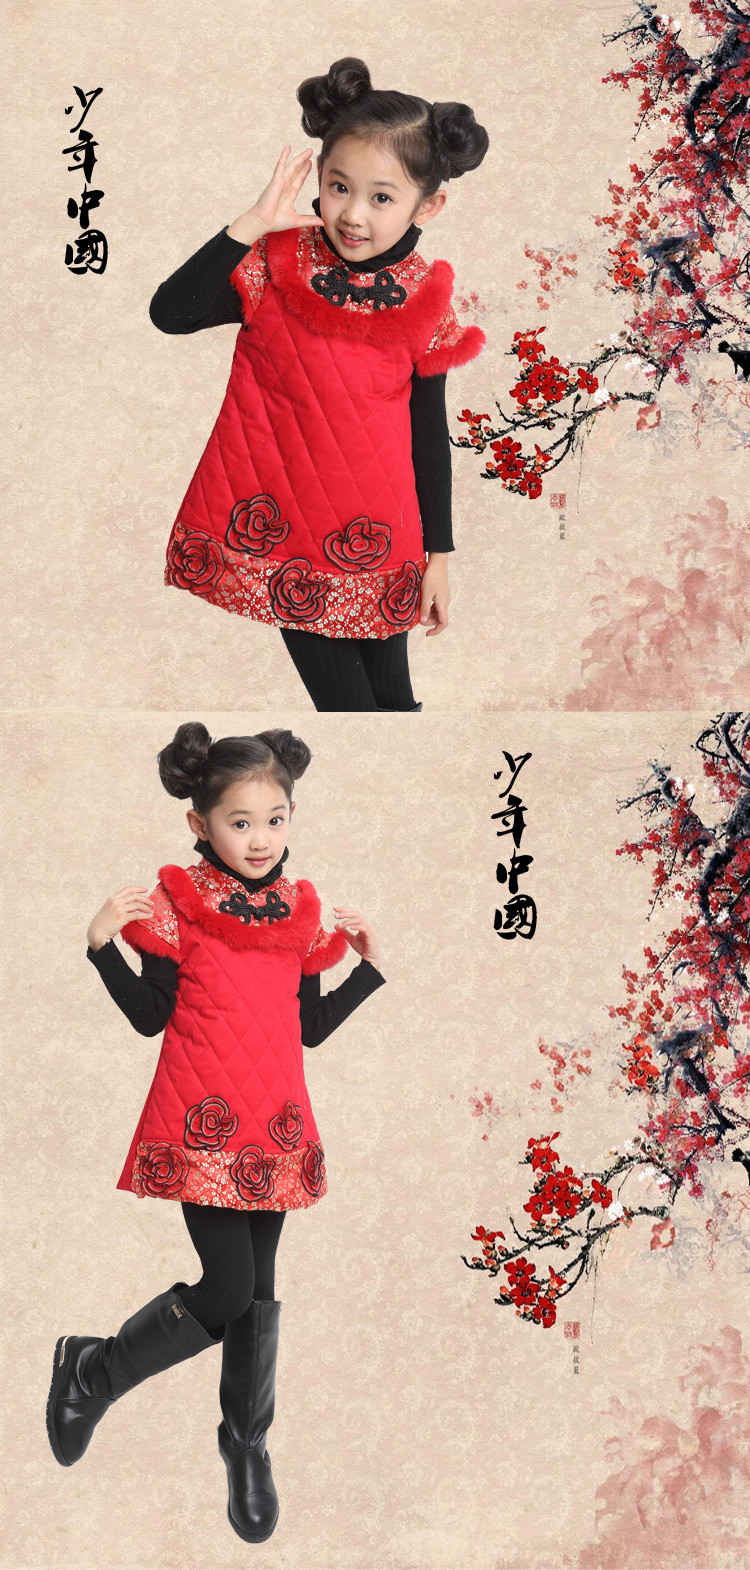 NEW Traditional Chinese New Year Silk Satin Vest Coat Weskit Qipao Dress  Outfit. 1 2 3 4 5 6 7 8 9 10 7619a7b1f7a8